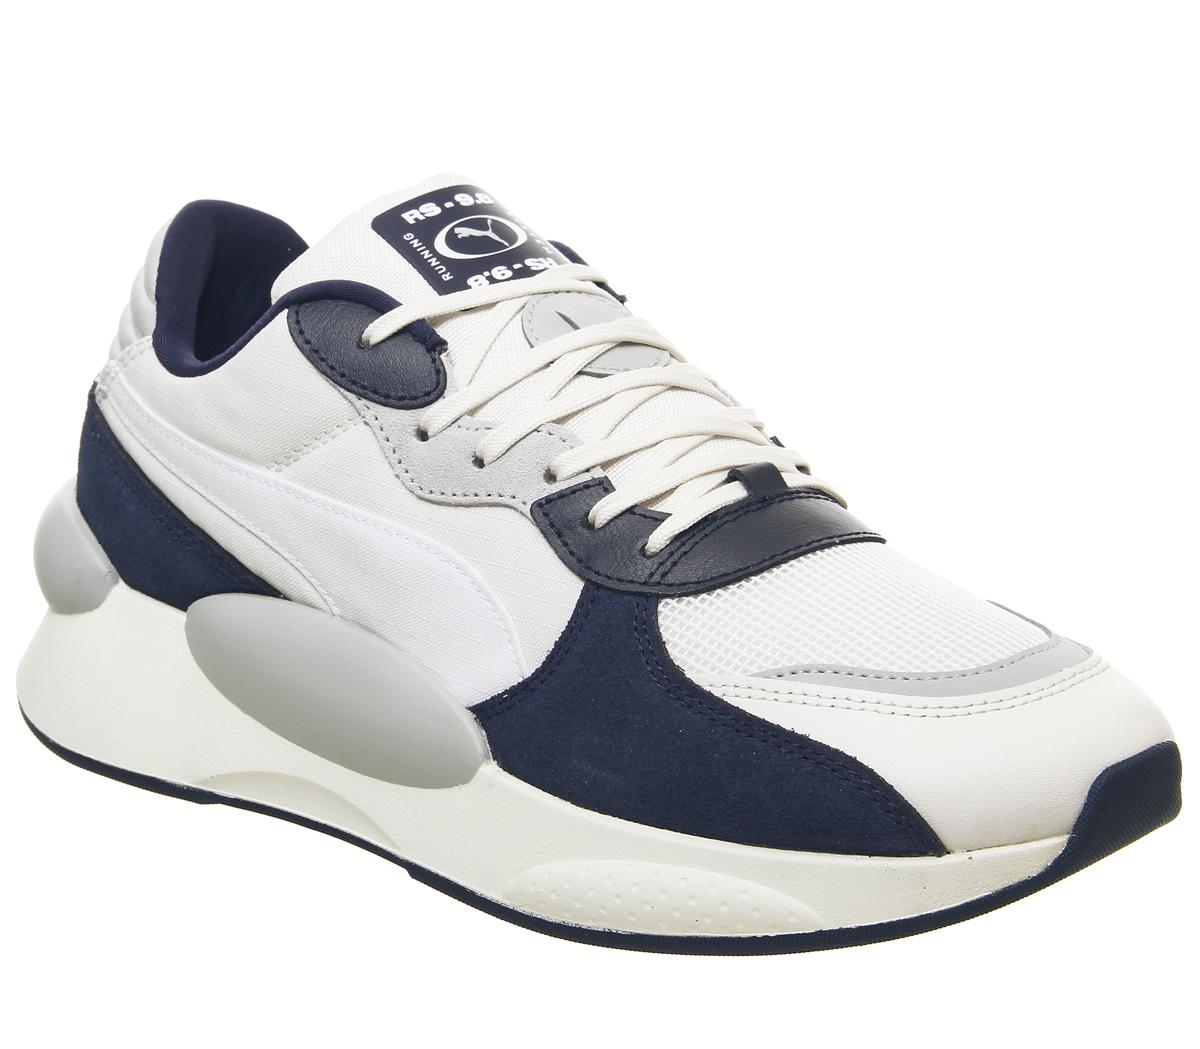 Puma Rs-9.8 Space Trainers Whisper White Peacoat - His trainers